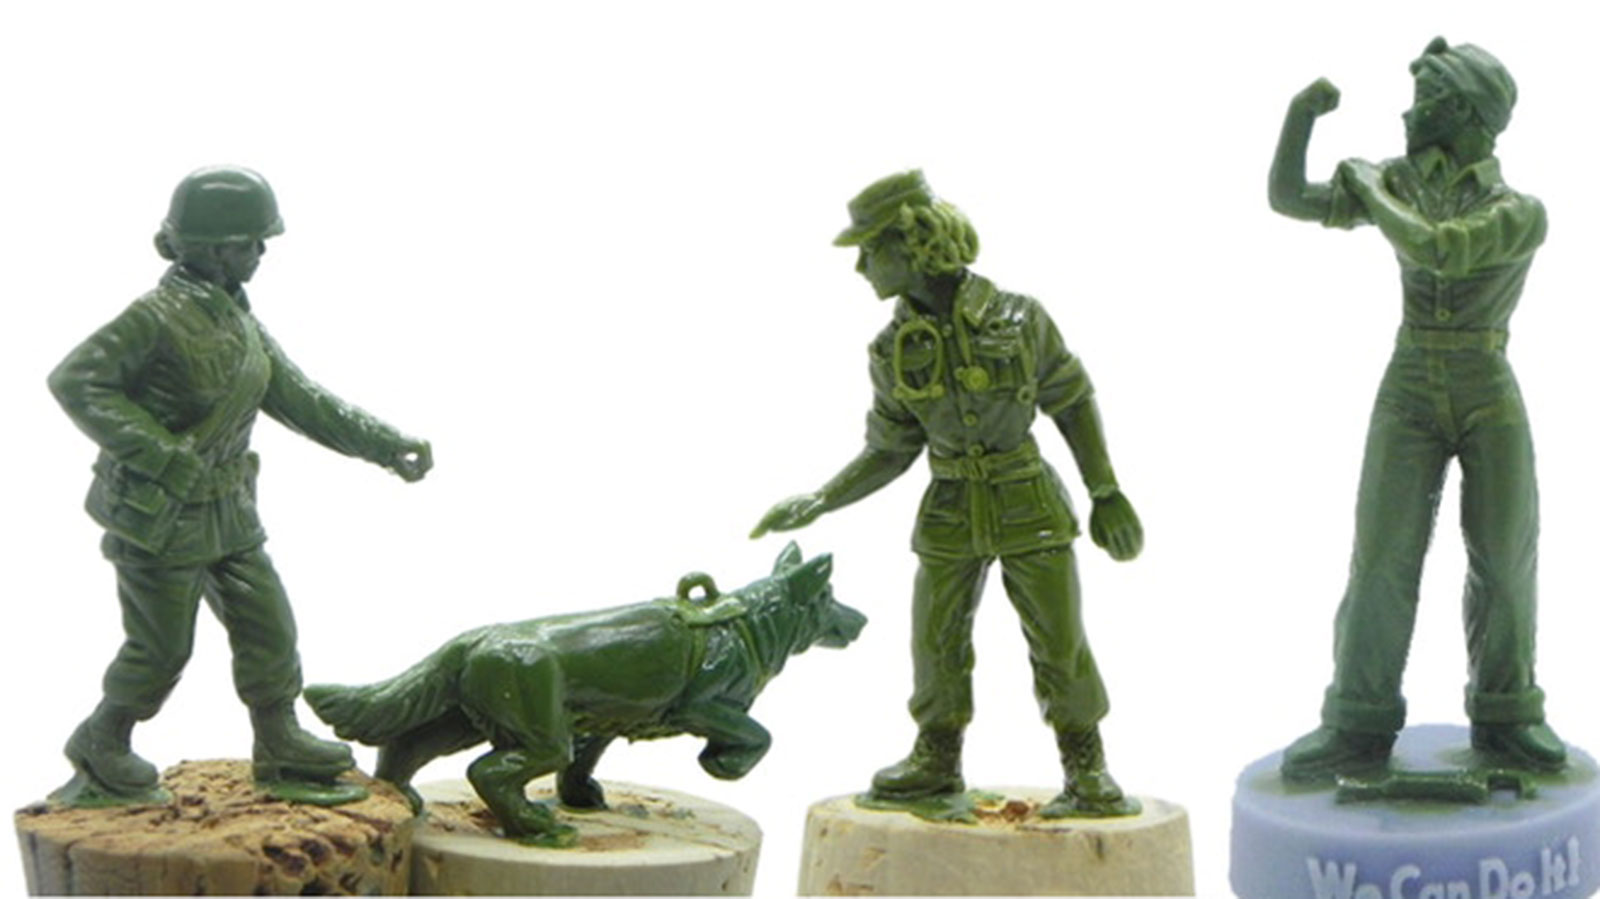 The new designs include a military dog and its handler. There's also a statuette of Rosie the Riveter.